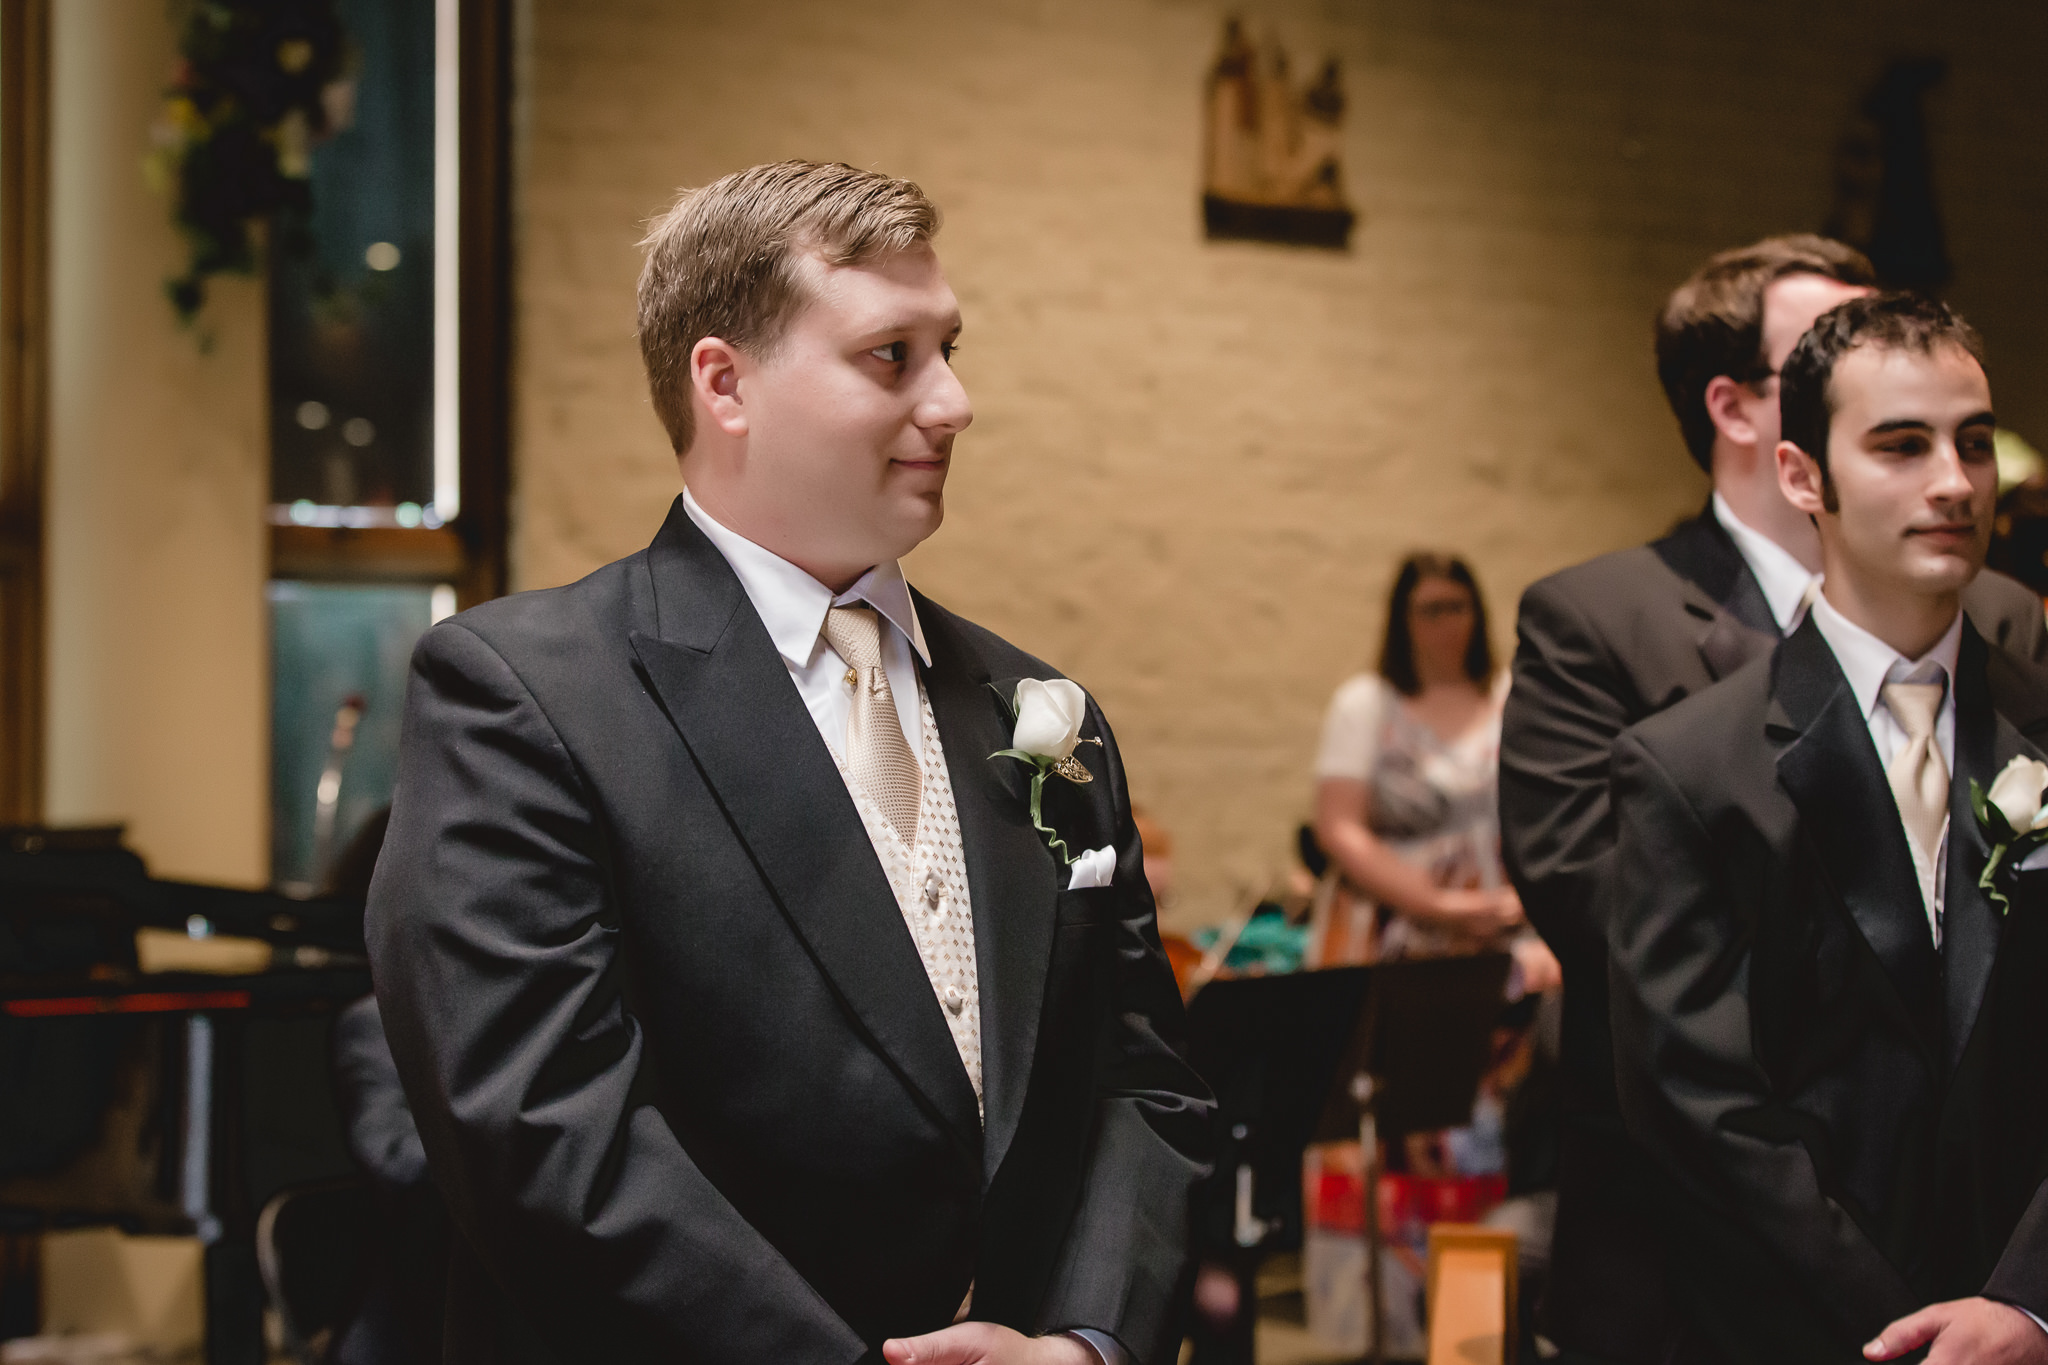 Groom waiting for his bride during wedding ceremony at St. John Neumann Church in Pittsburgh PA